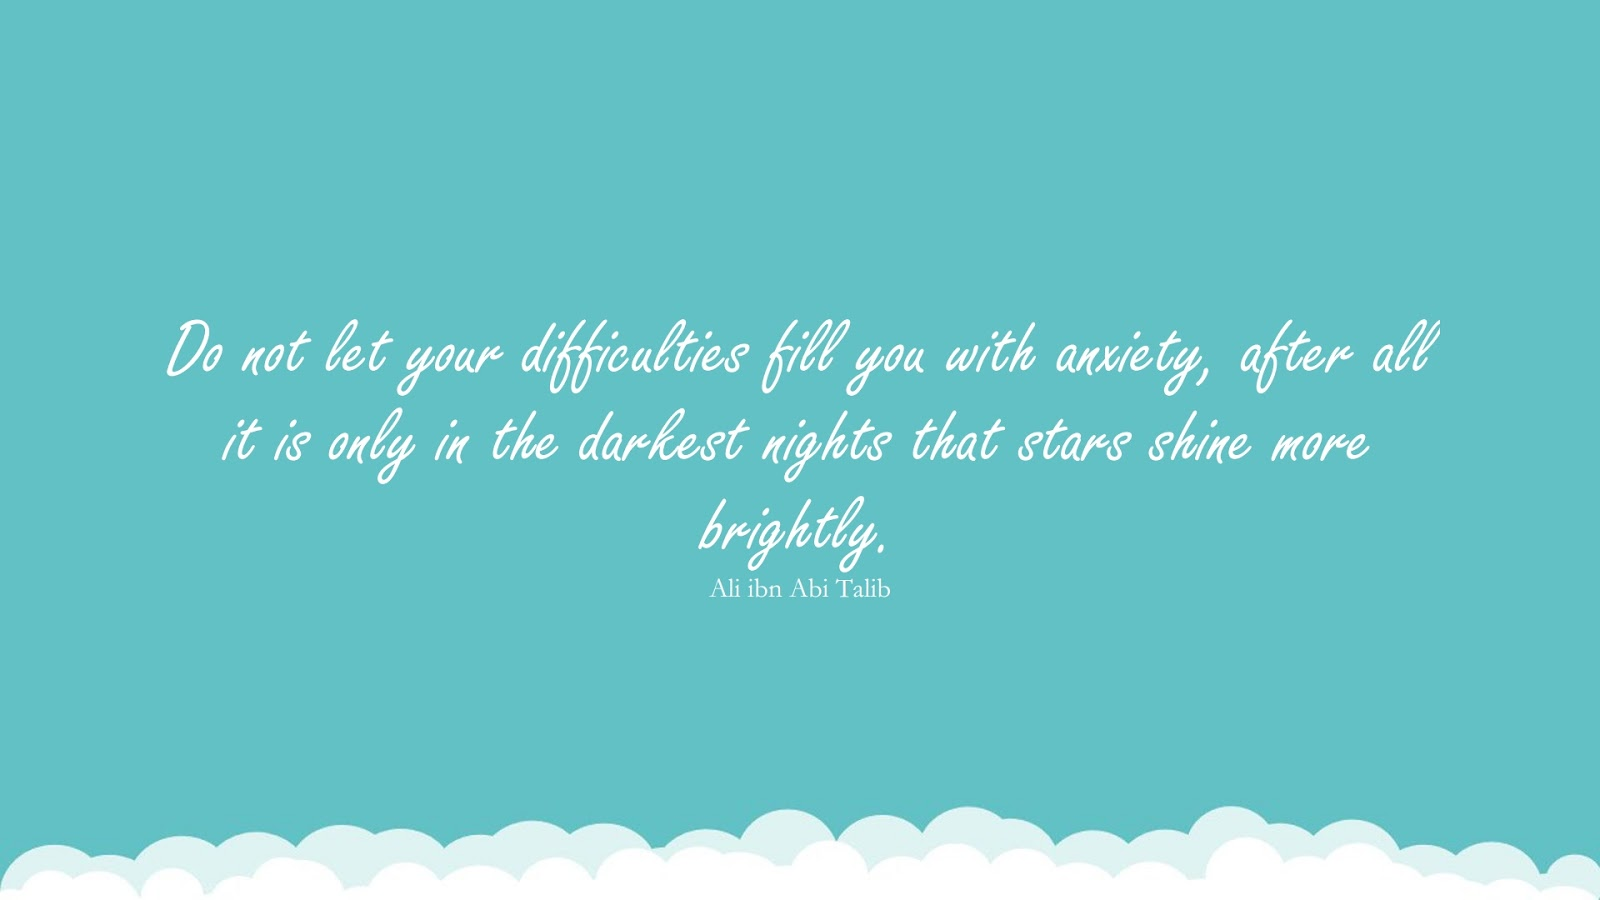 Do not let your difficulties fill you with anxiety, after all it is only in the darkest nights that stars shine more brightly. (Ali ibn Abi Talib);  #AliibnAbiTalibQuotes